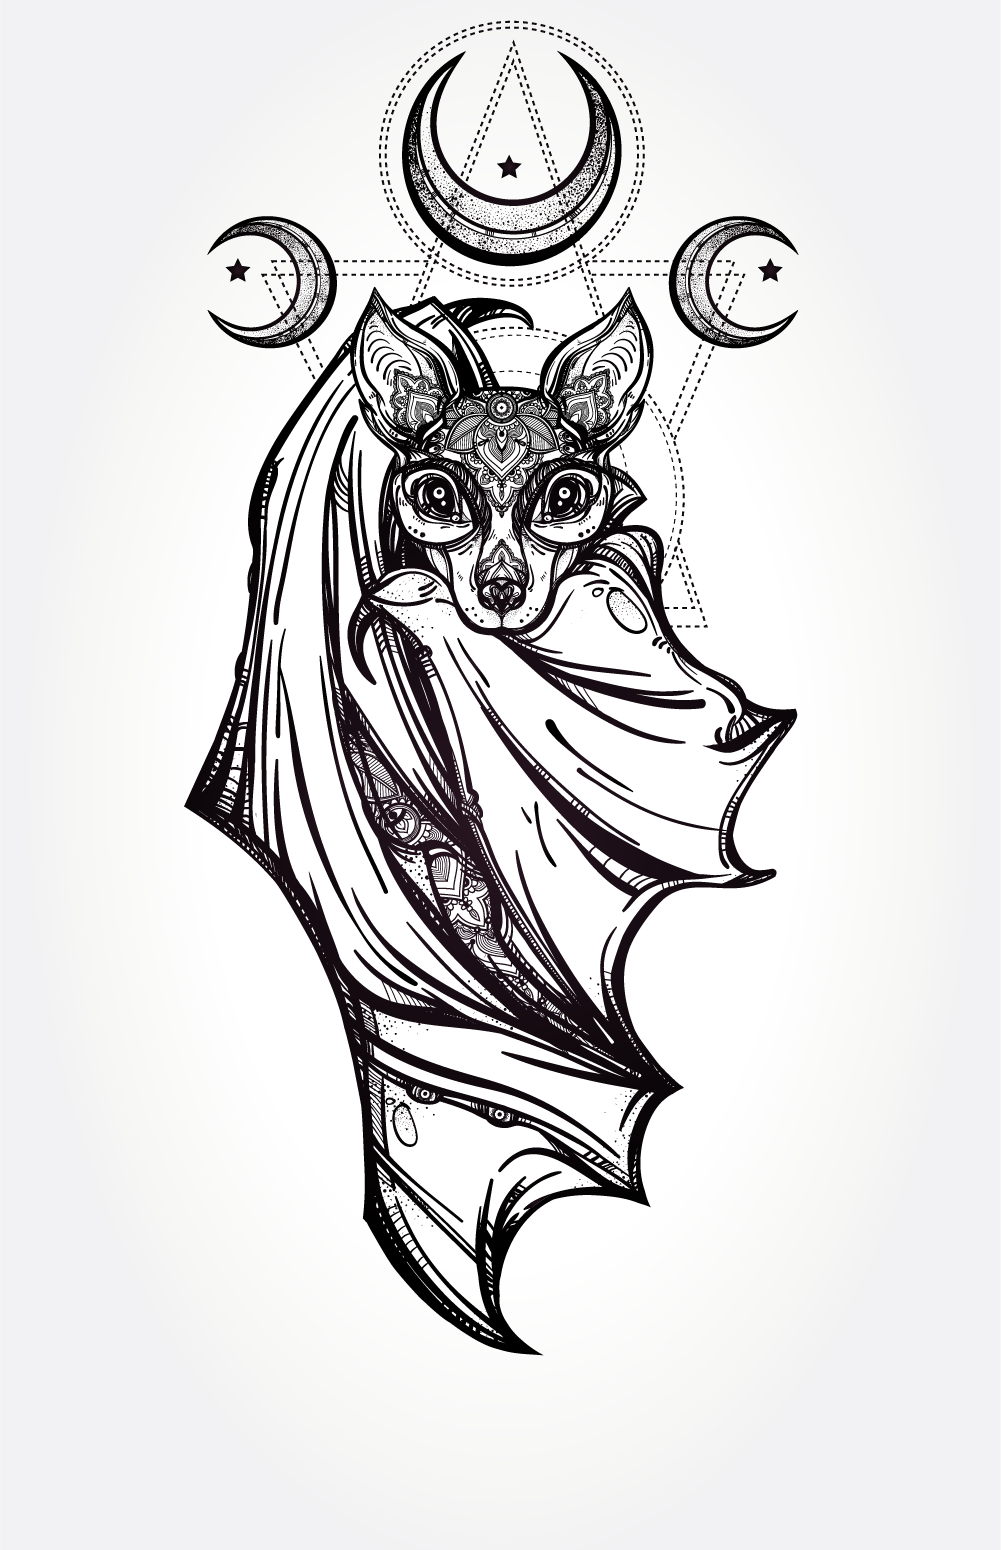 Rare Ancient Bat Vampire Spirit Named Merkim - Raw, Ancient Power Of Incredible Influence